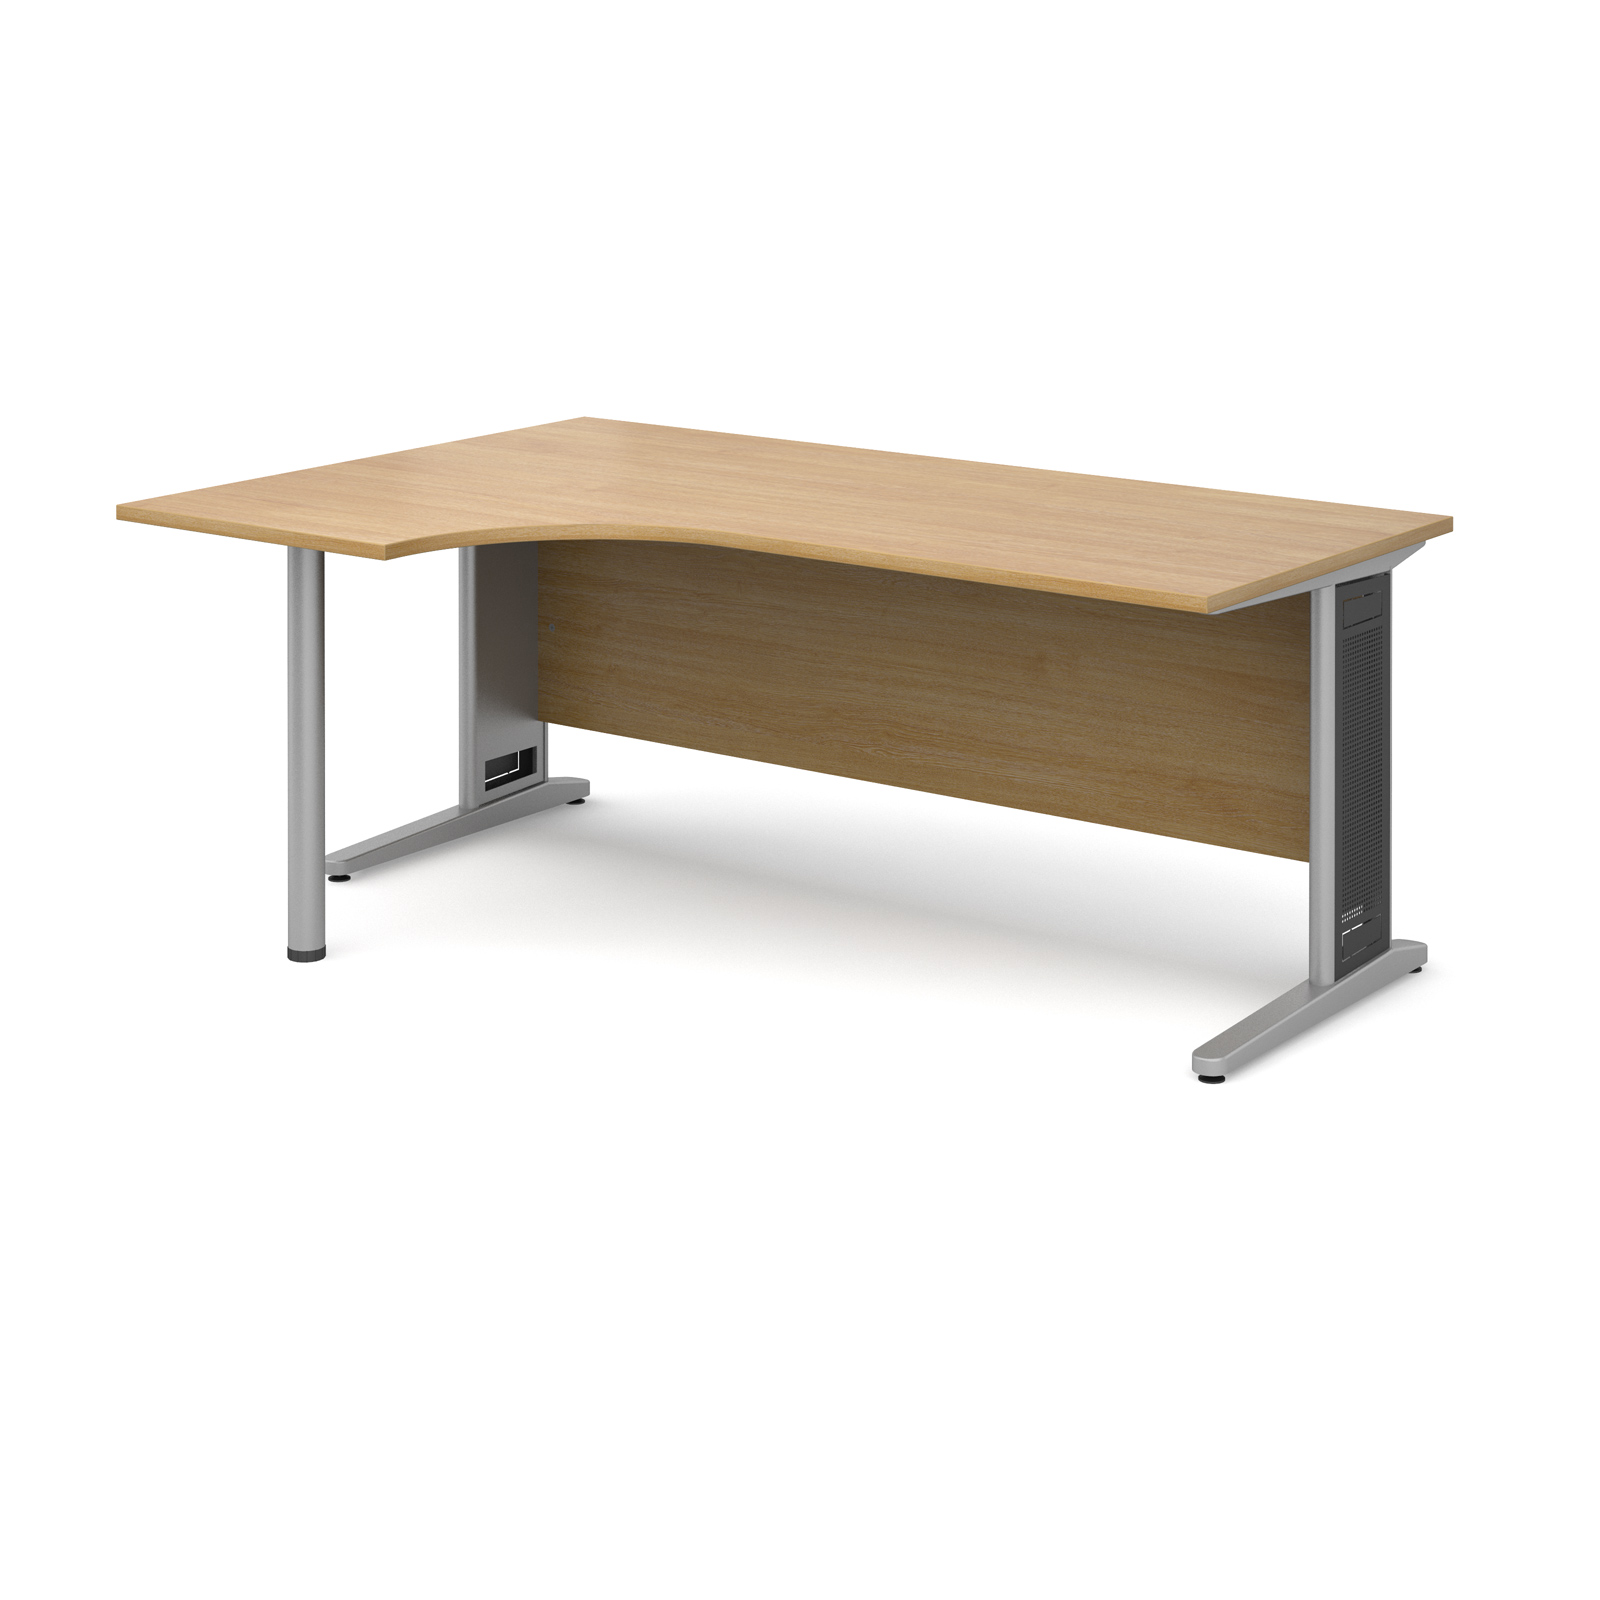 Largo left hand ergonomic desk 1800mm - silver cantilever frame with removable grill, oak top